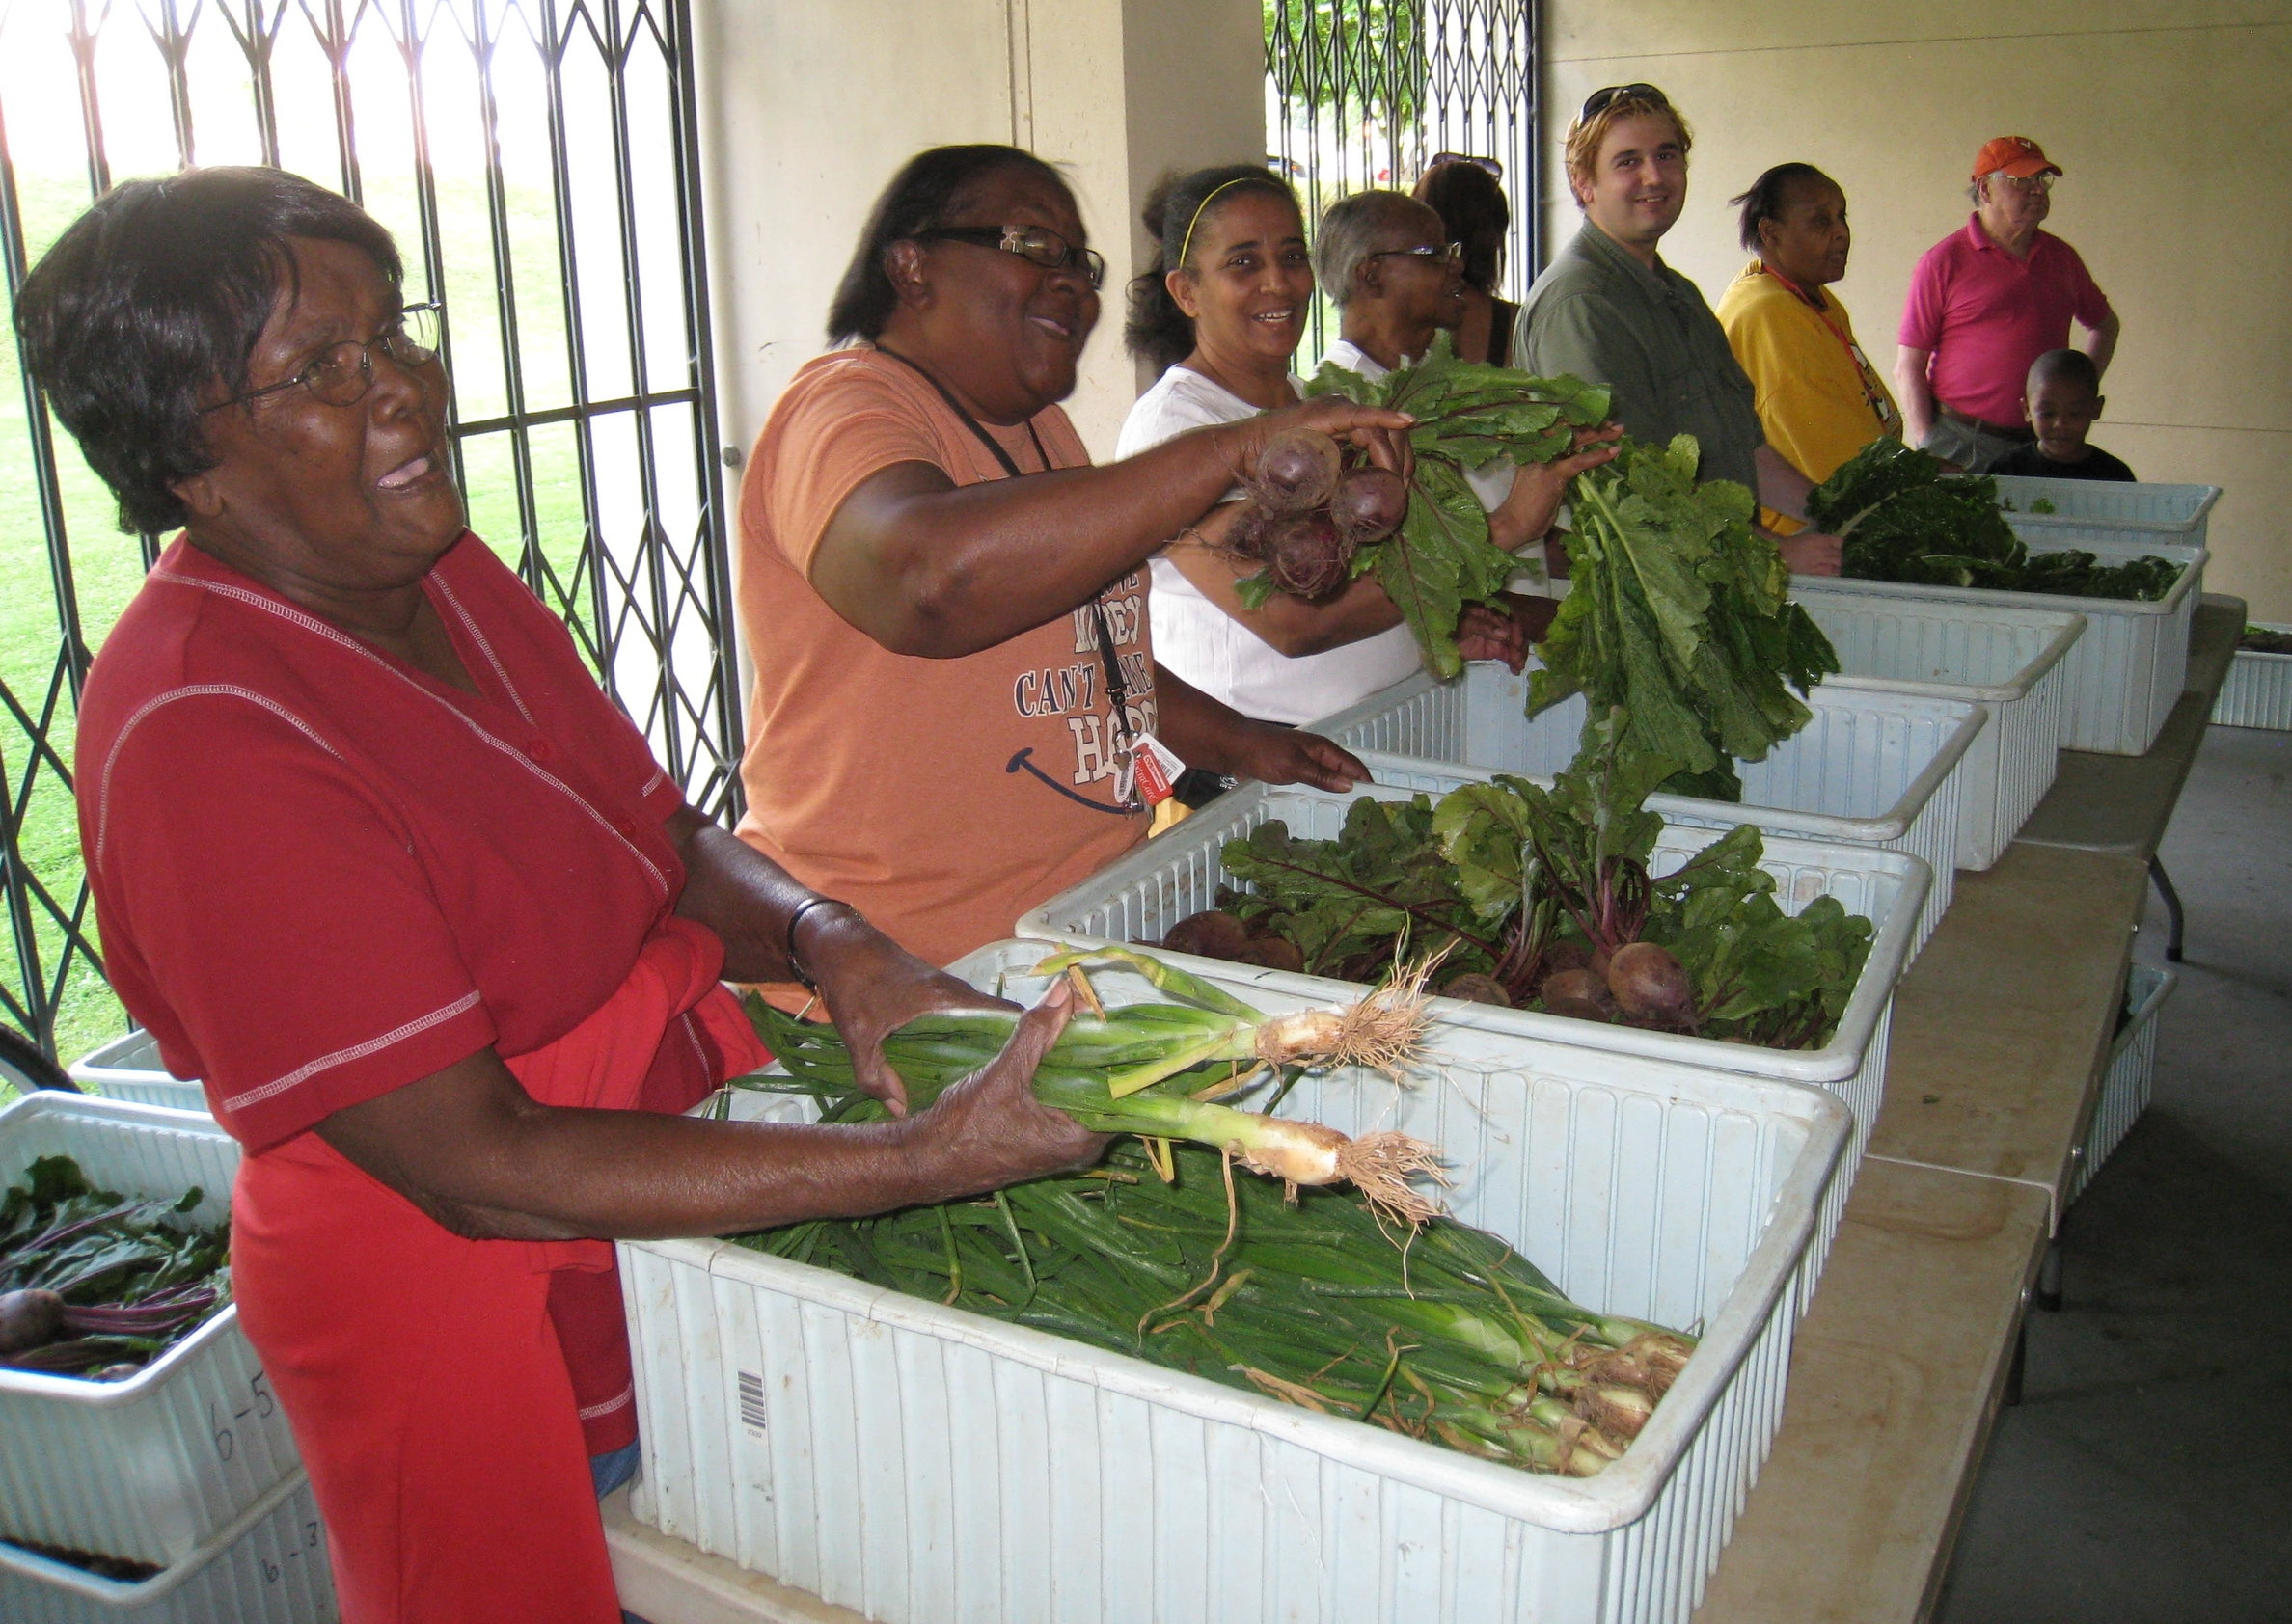 Volunteers prepare to share vegetables with neighbors at Crescent Halls - June 2012